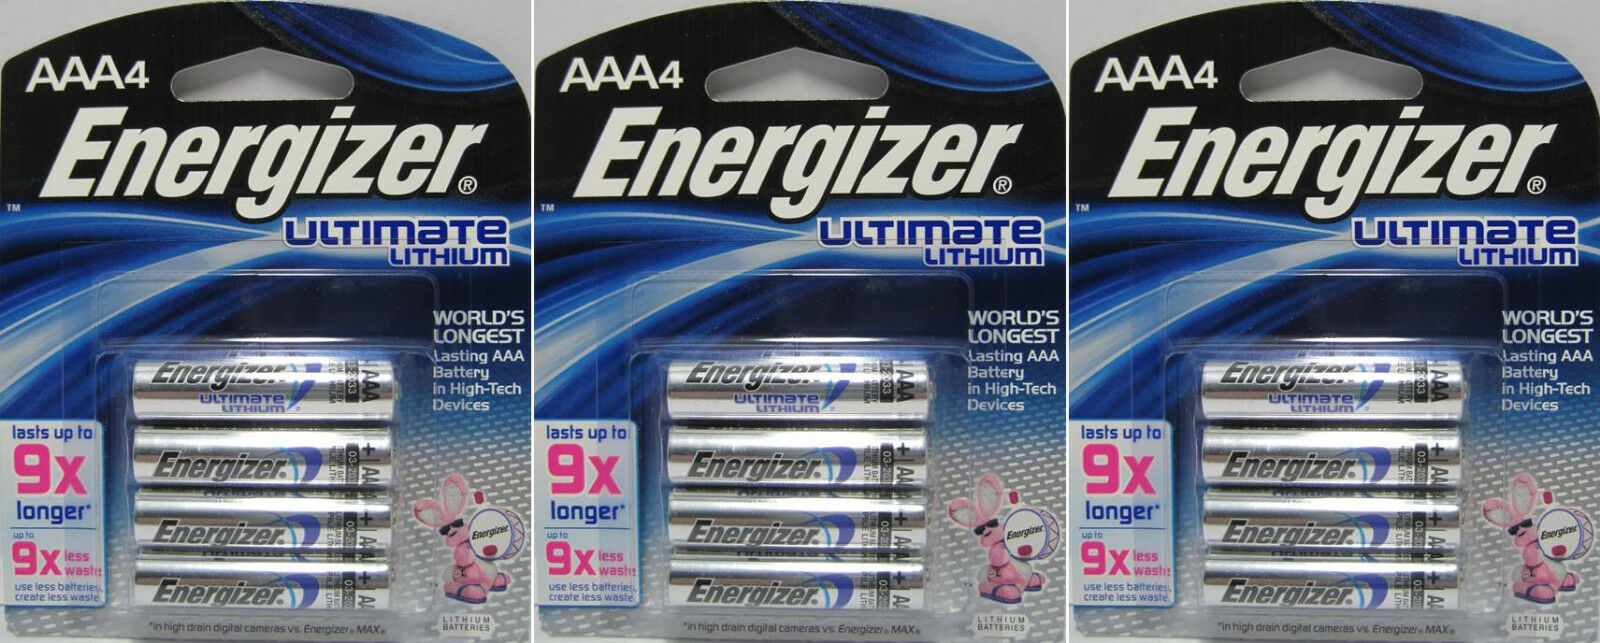 12 Energizer L92 Ultimate Lithium Aaa Batteries Exp 2037 1799 E92 Bp 4 1 Of 1free Shipping